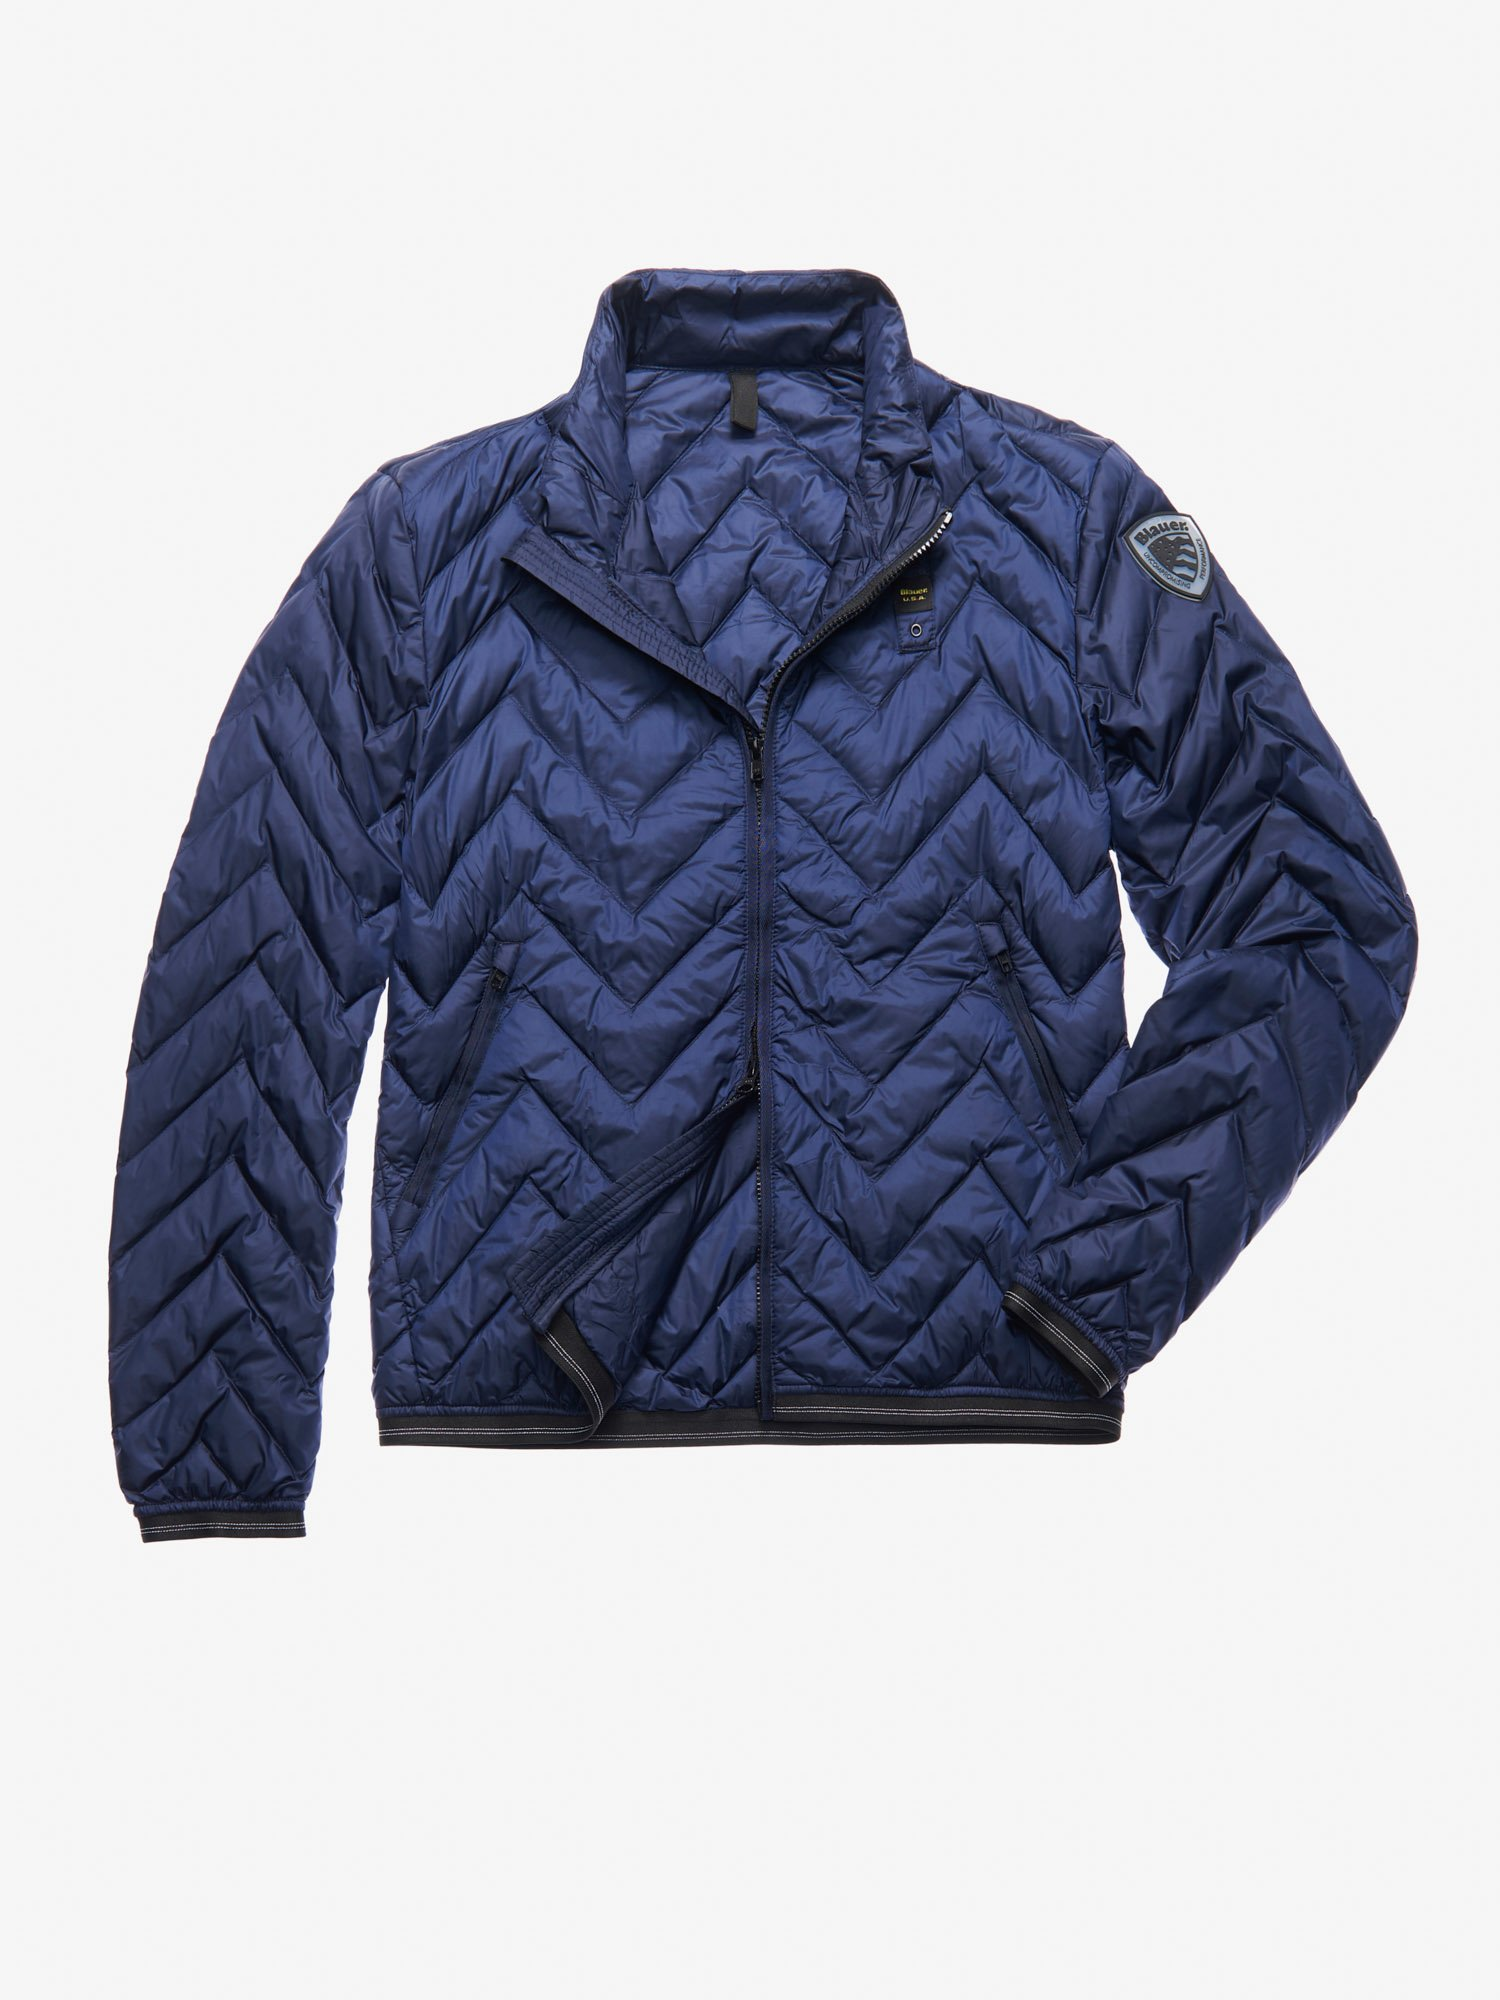 75964ea095 Down Jackets for Men - Filled, Warm & Stylish | Blauer USA ®